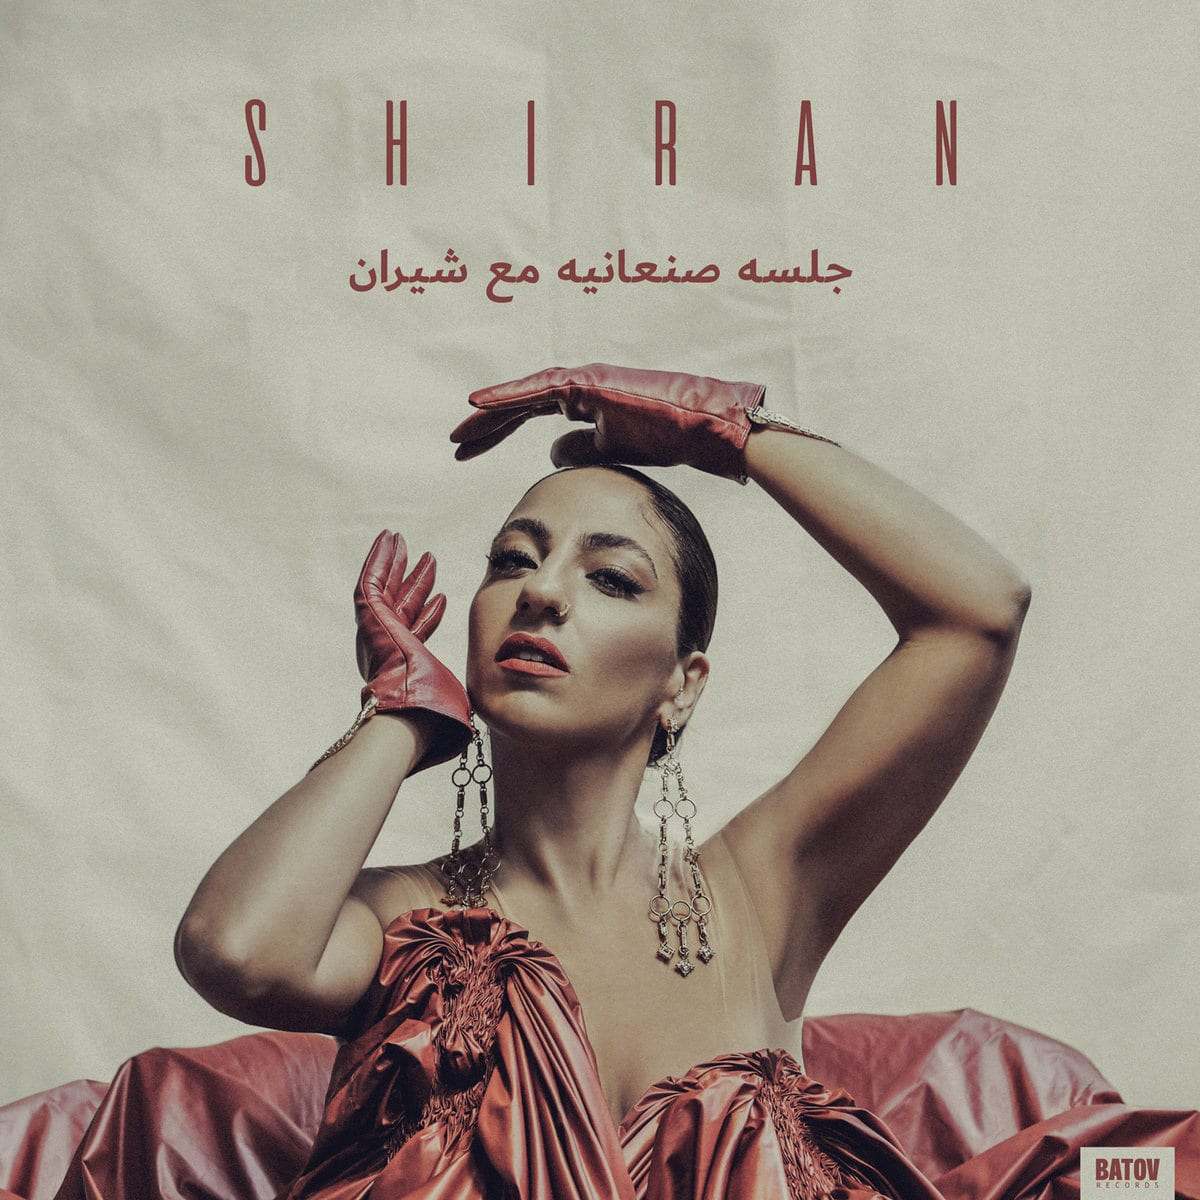 SHIRAN - Glsah Sanaanea with Shiran Cover Digital